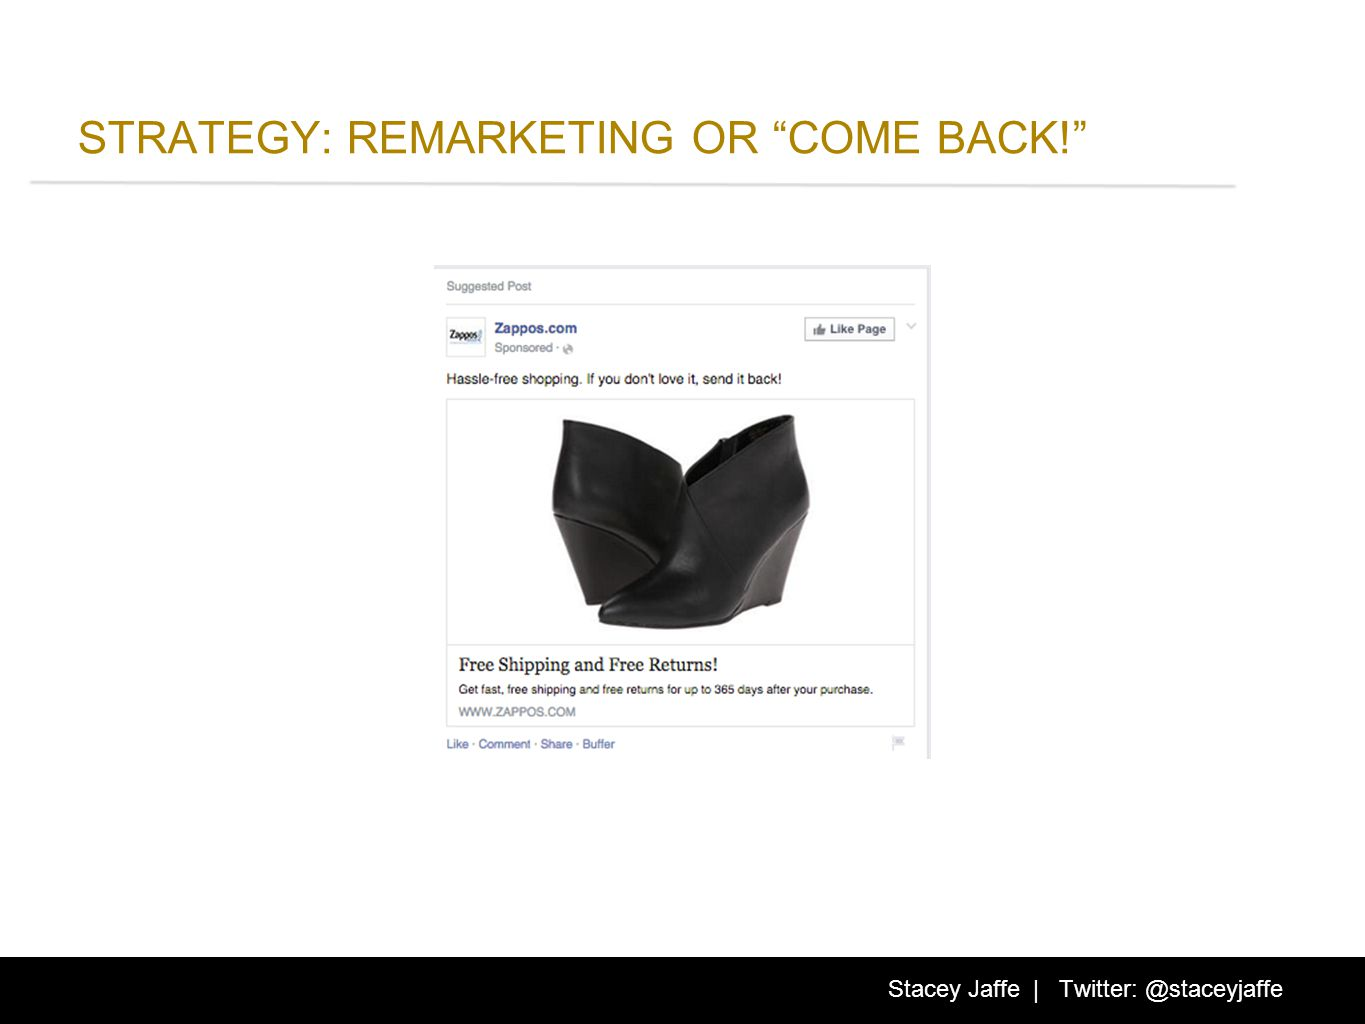 STRATEGY: REMARKETING OR COME BACK! Stacey Jaffe | Twitter: @staceyjaffe